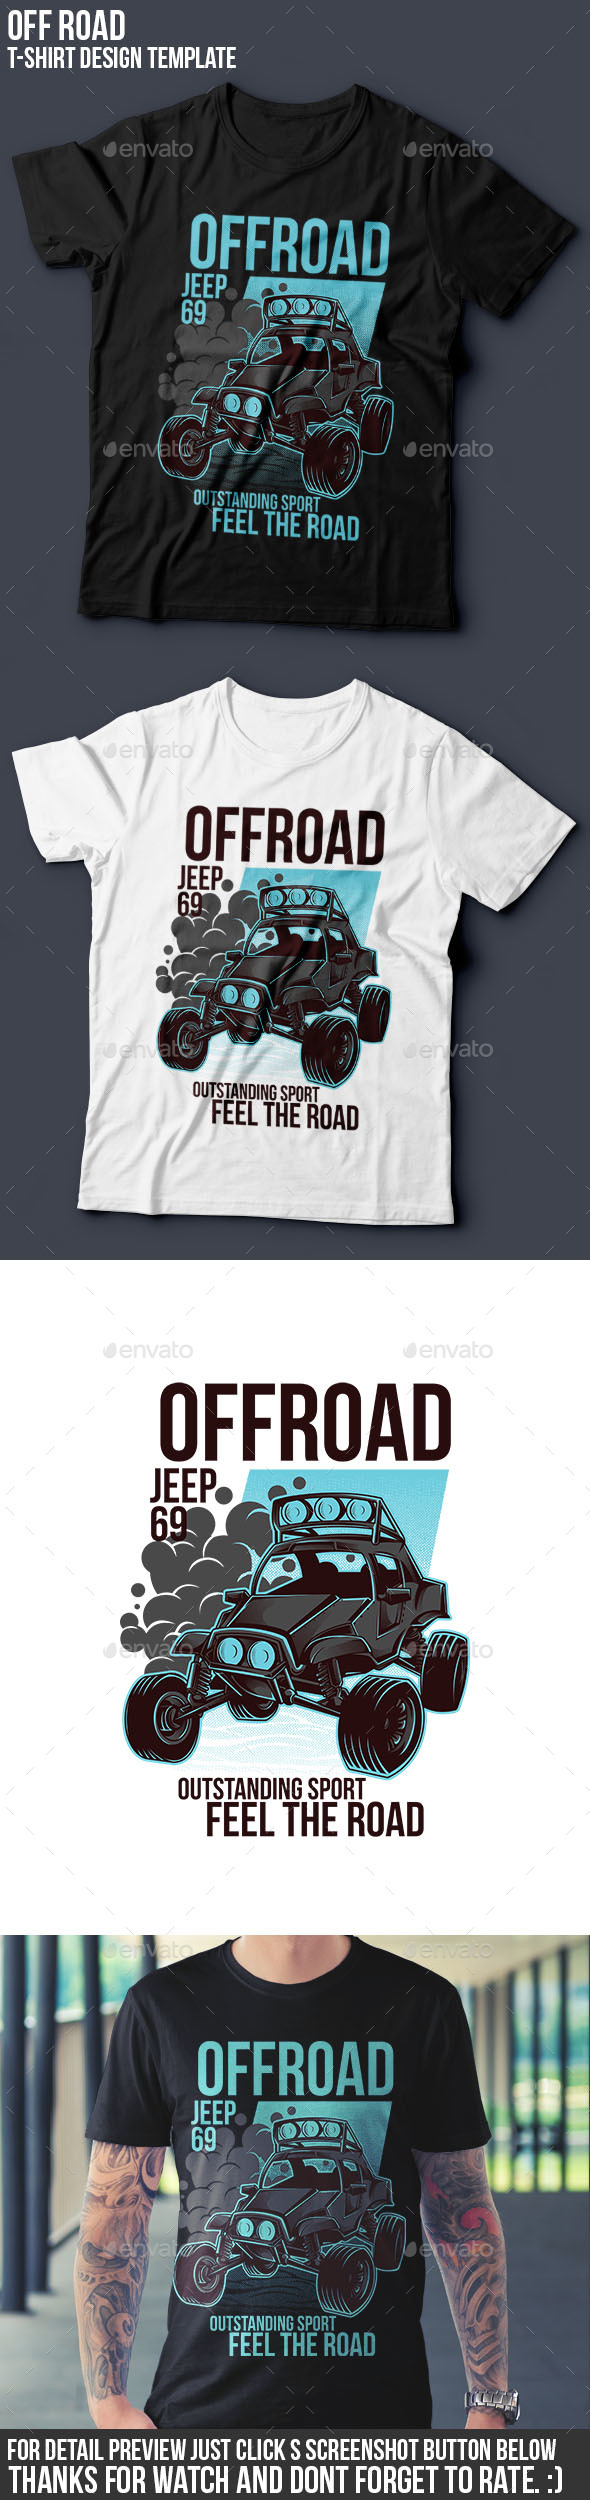 Offroad part 1 t-shirt Design - Sports & Teams T-Shirts